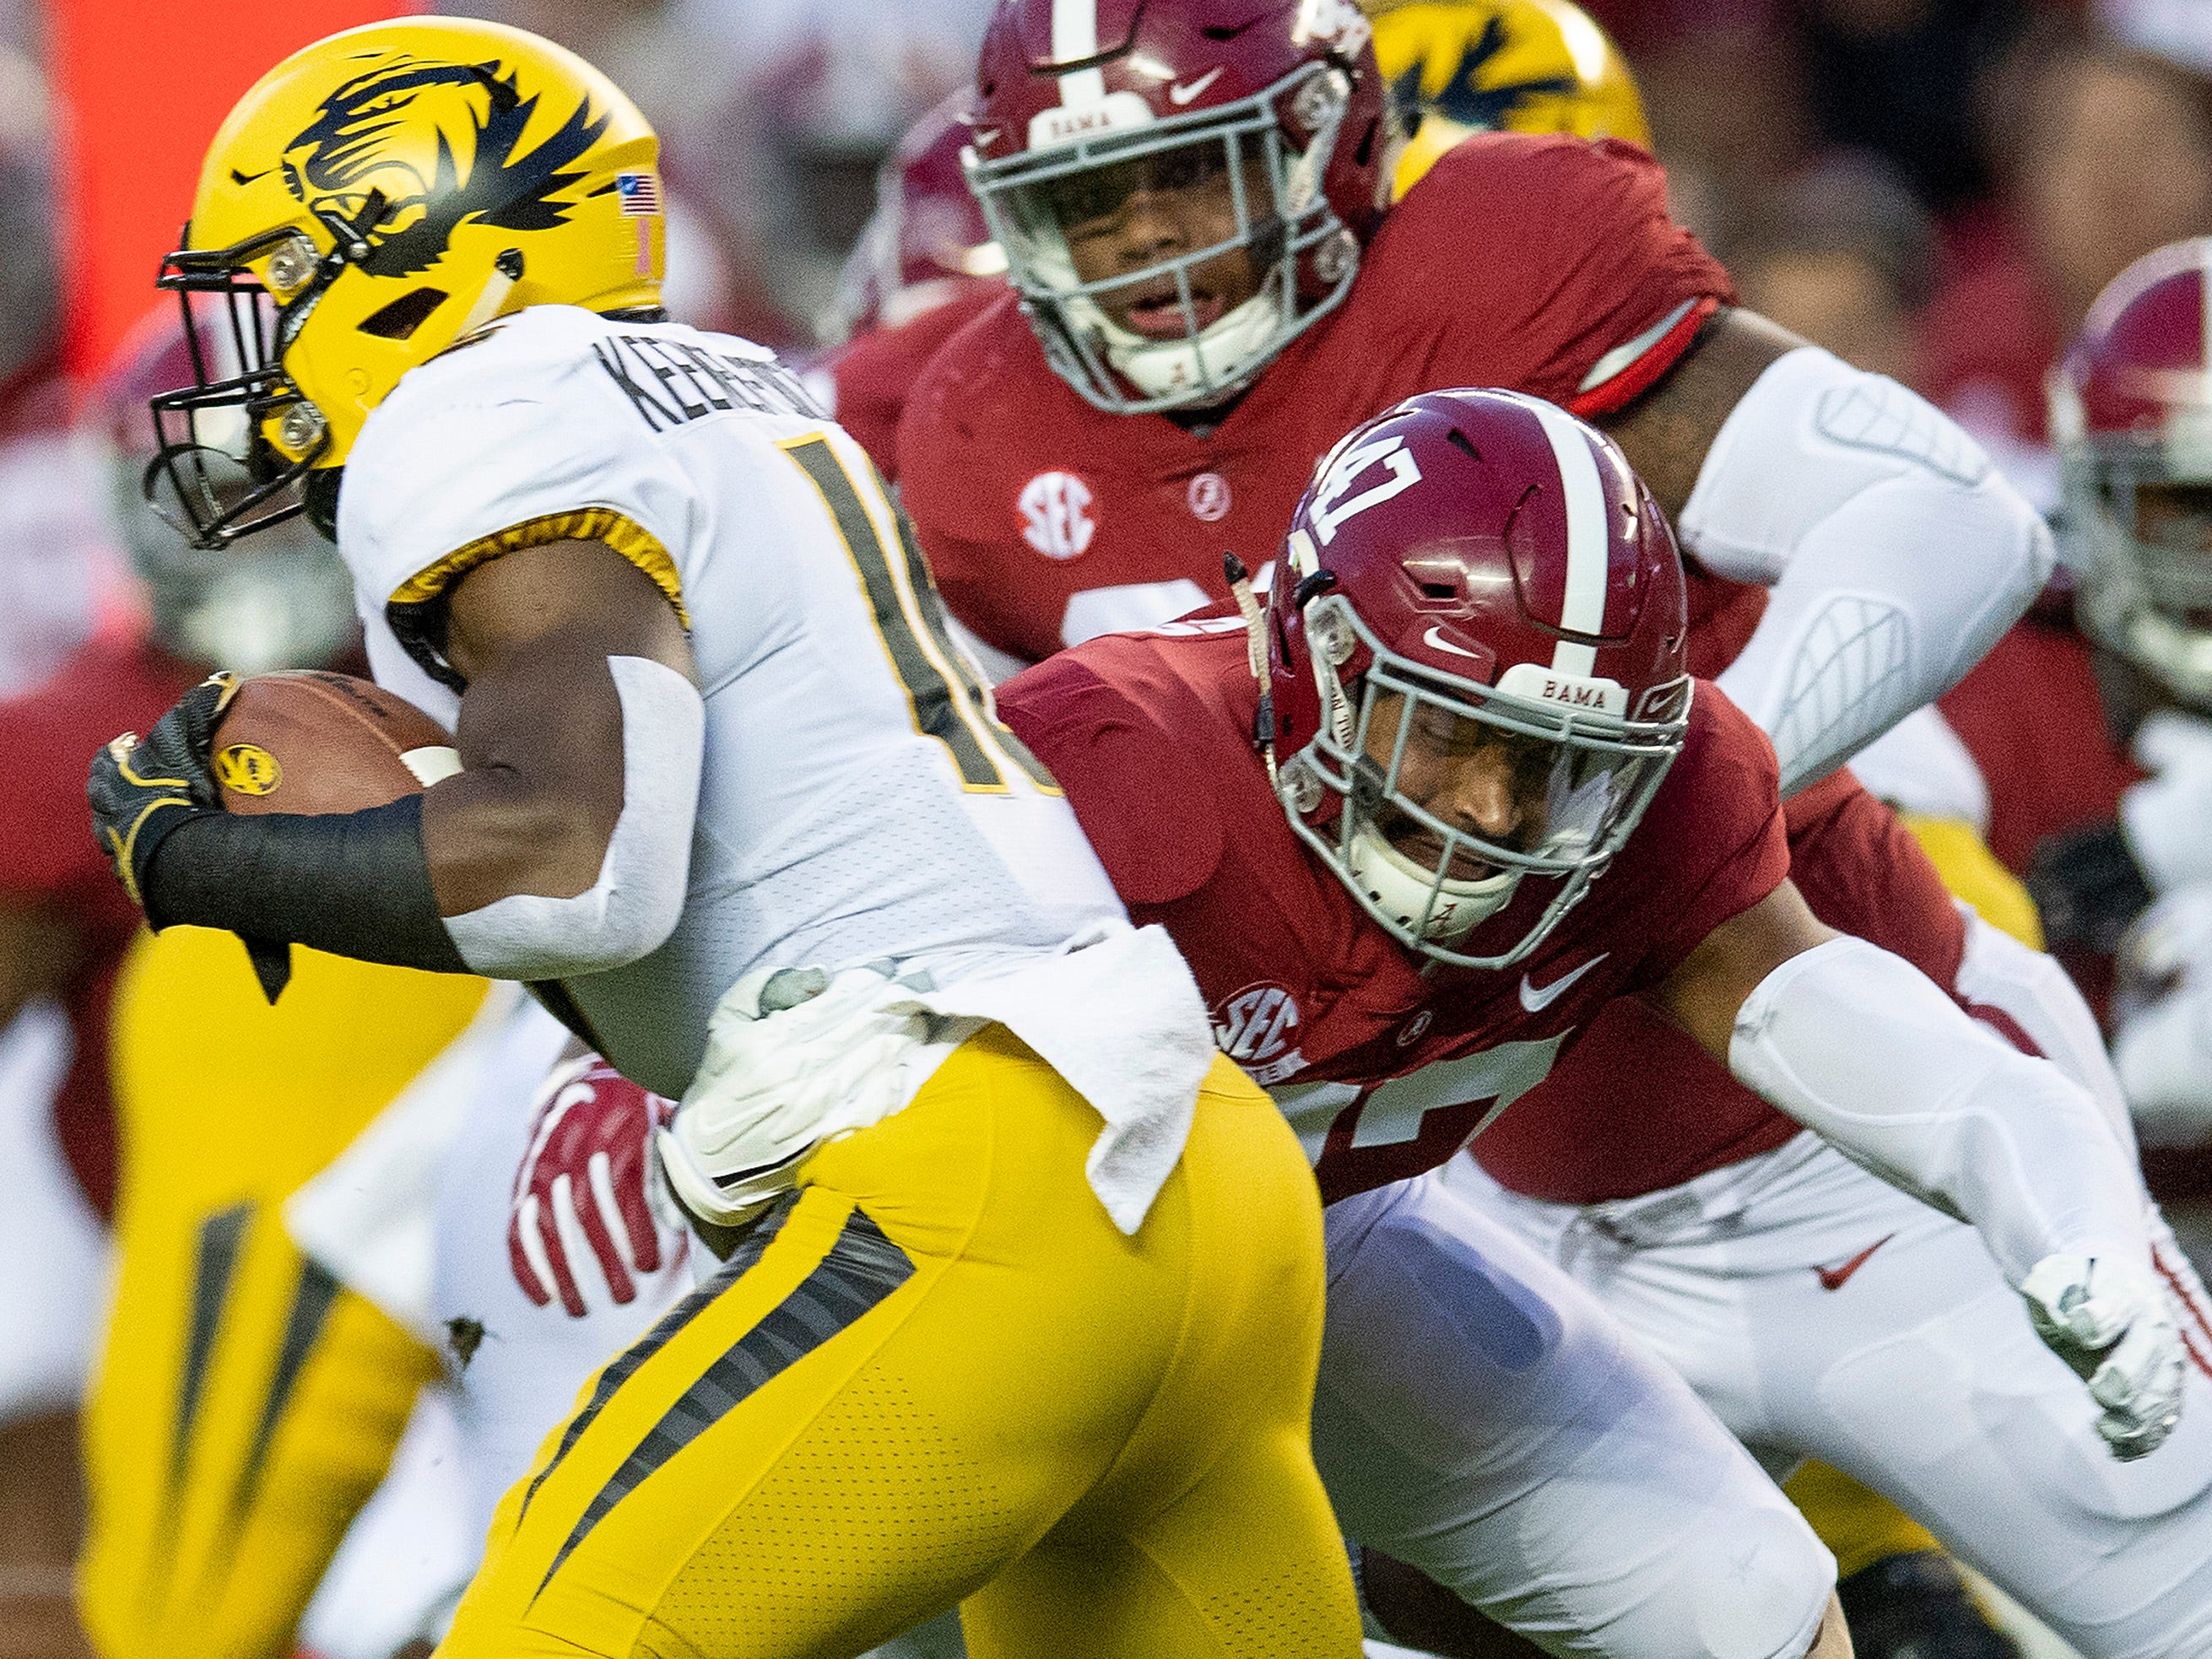 Alabama linebacker Christian Miller (47) stops Missouri running back Damarea Crockett (16) in first half action at Bryant Denny Stadium in Tuscaloosa, Ala., on Saturday October 13, 2018.